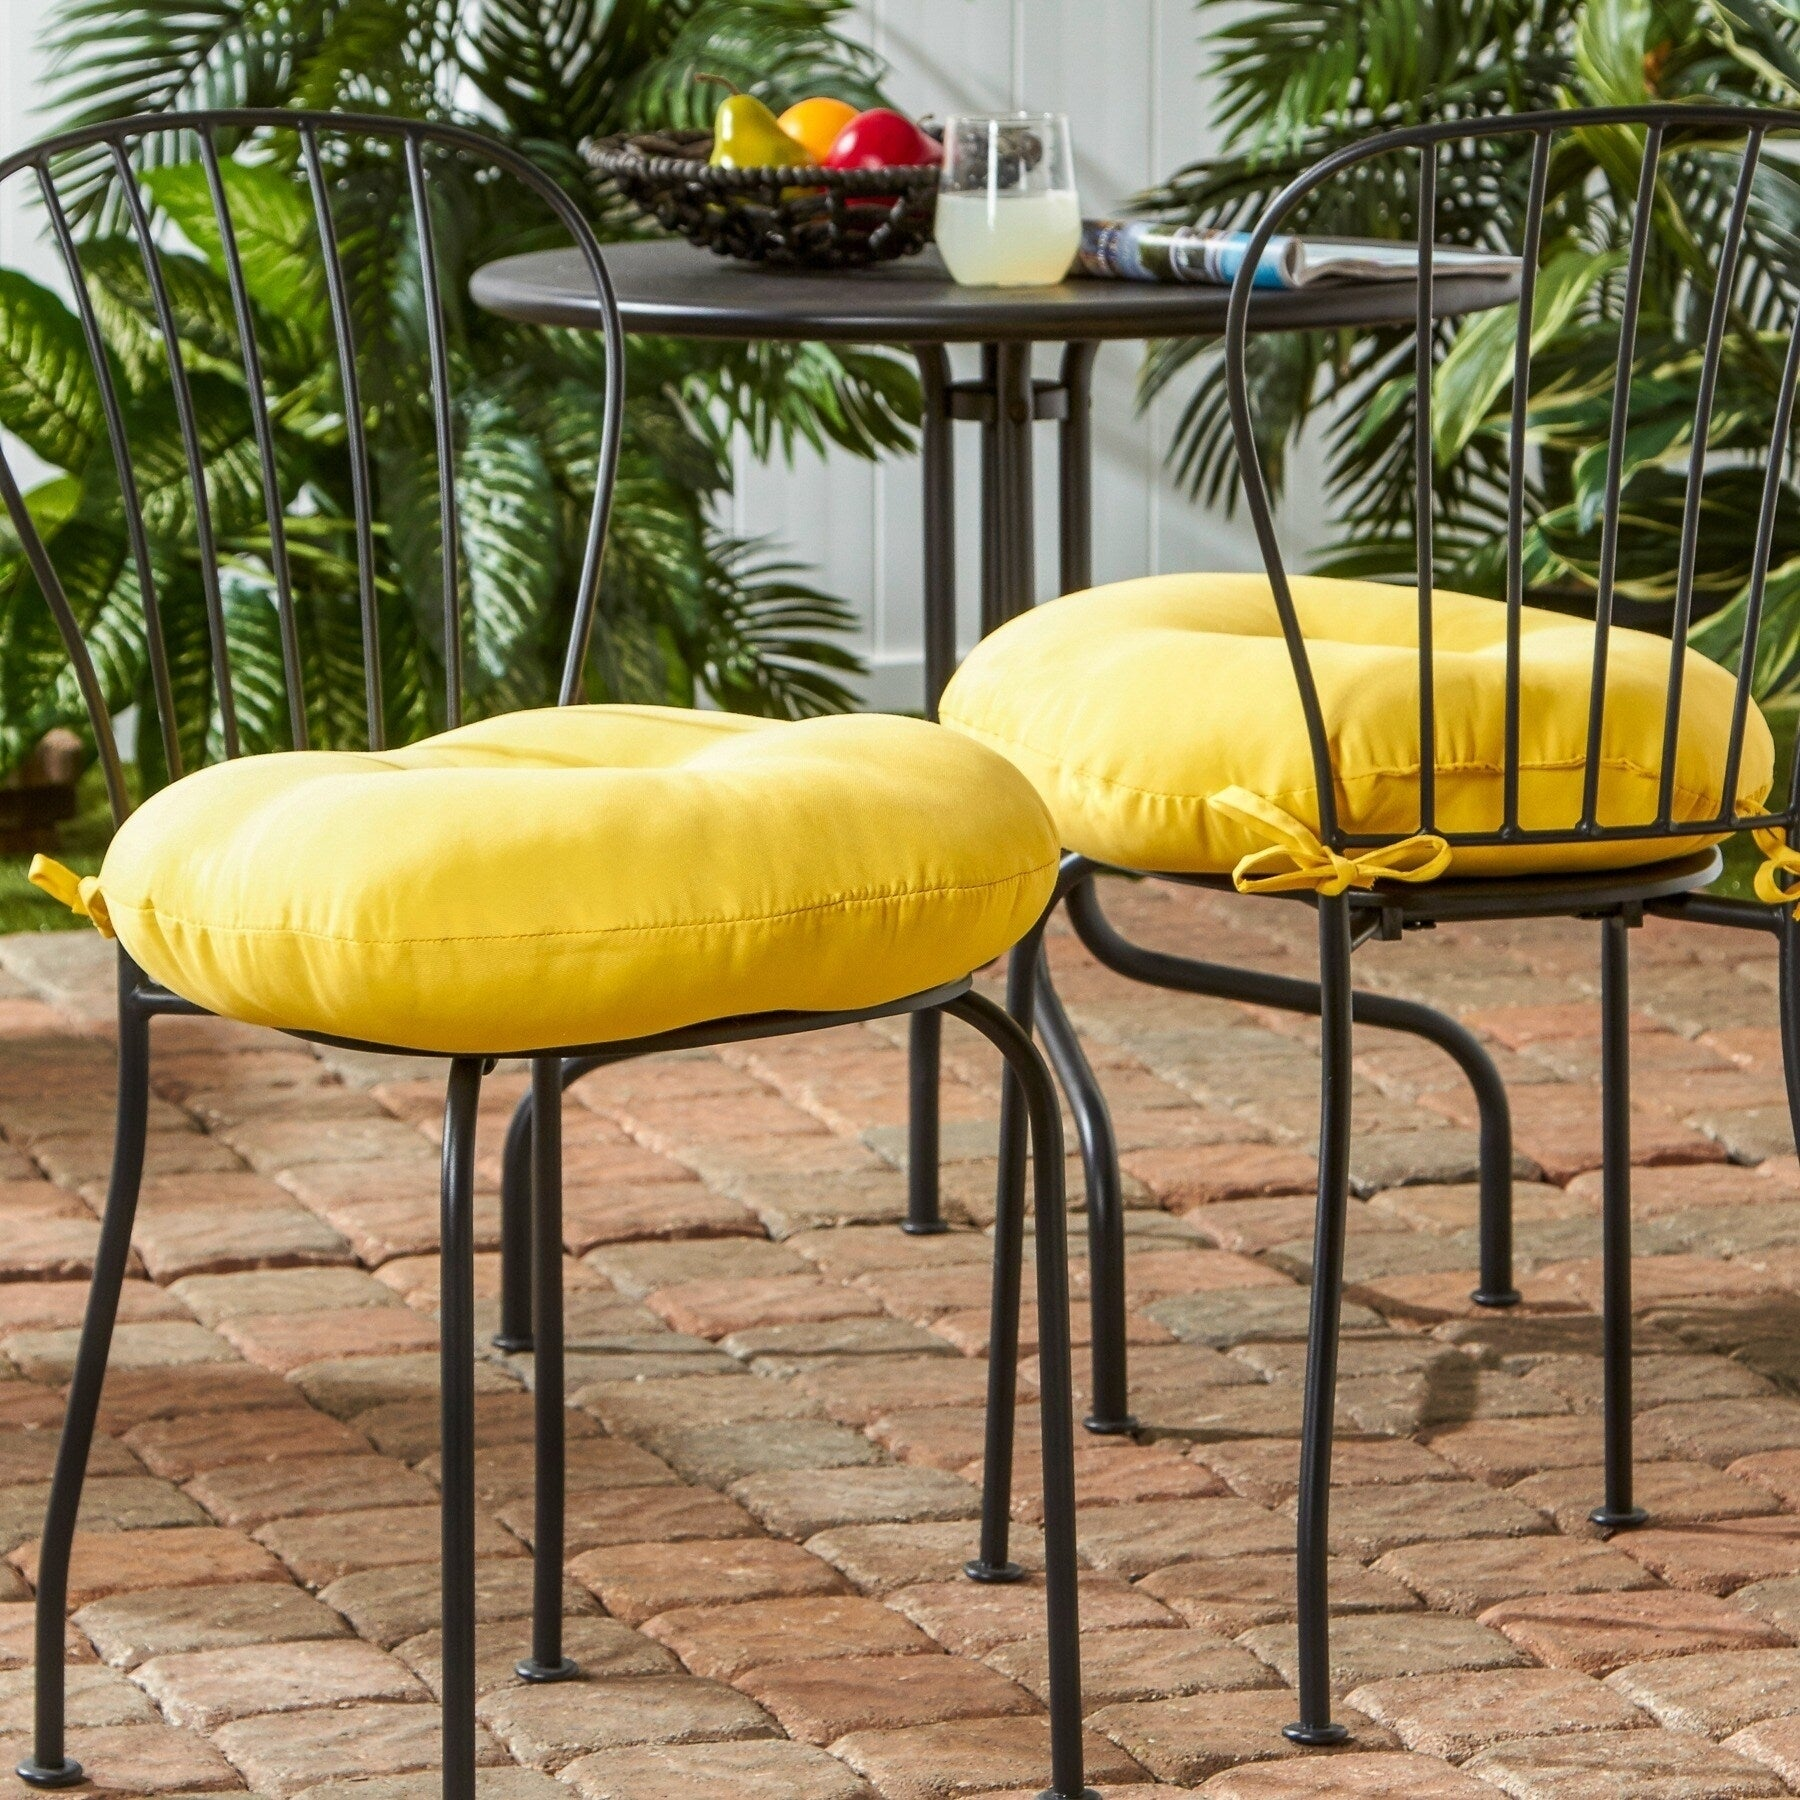 Driftwood 18 Inch Round Outdoor Yellow Bistro Chair Cushion Set Of 2 By Havenside Home 18w X 18l Overstock 22751545